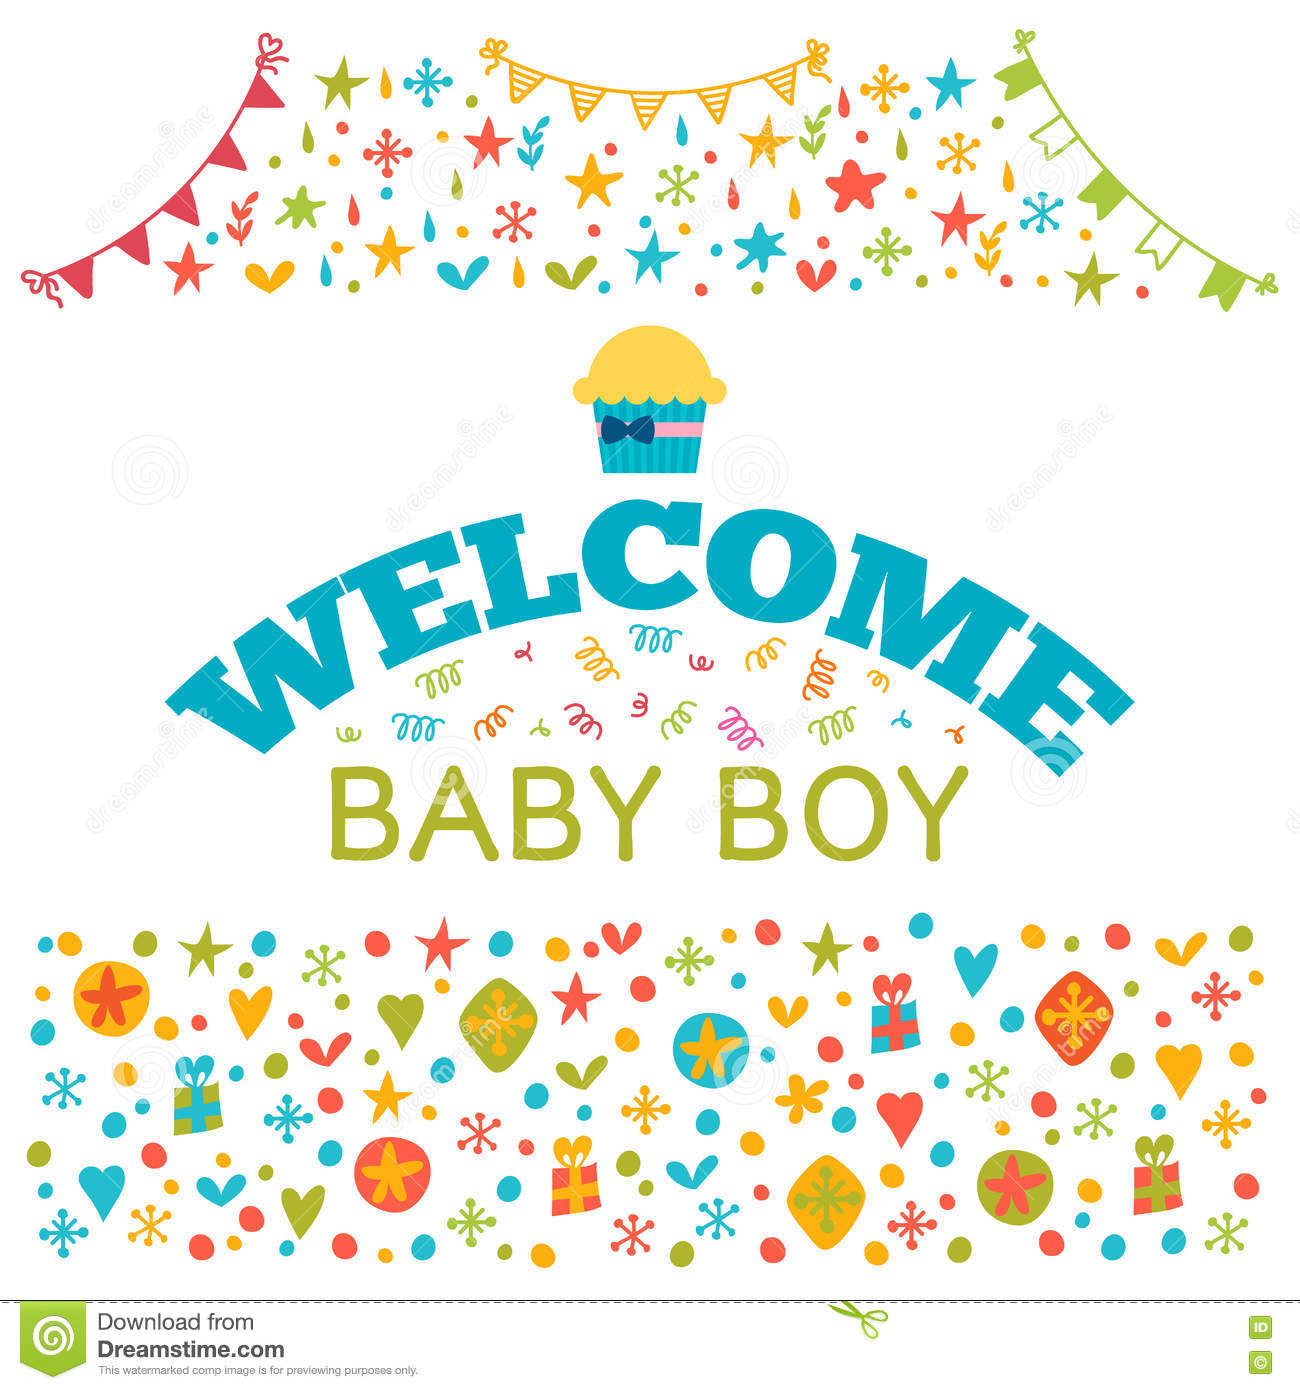 Printable baby shower cards zrom m4hsunfo